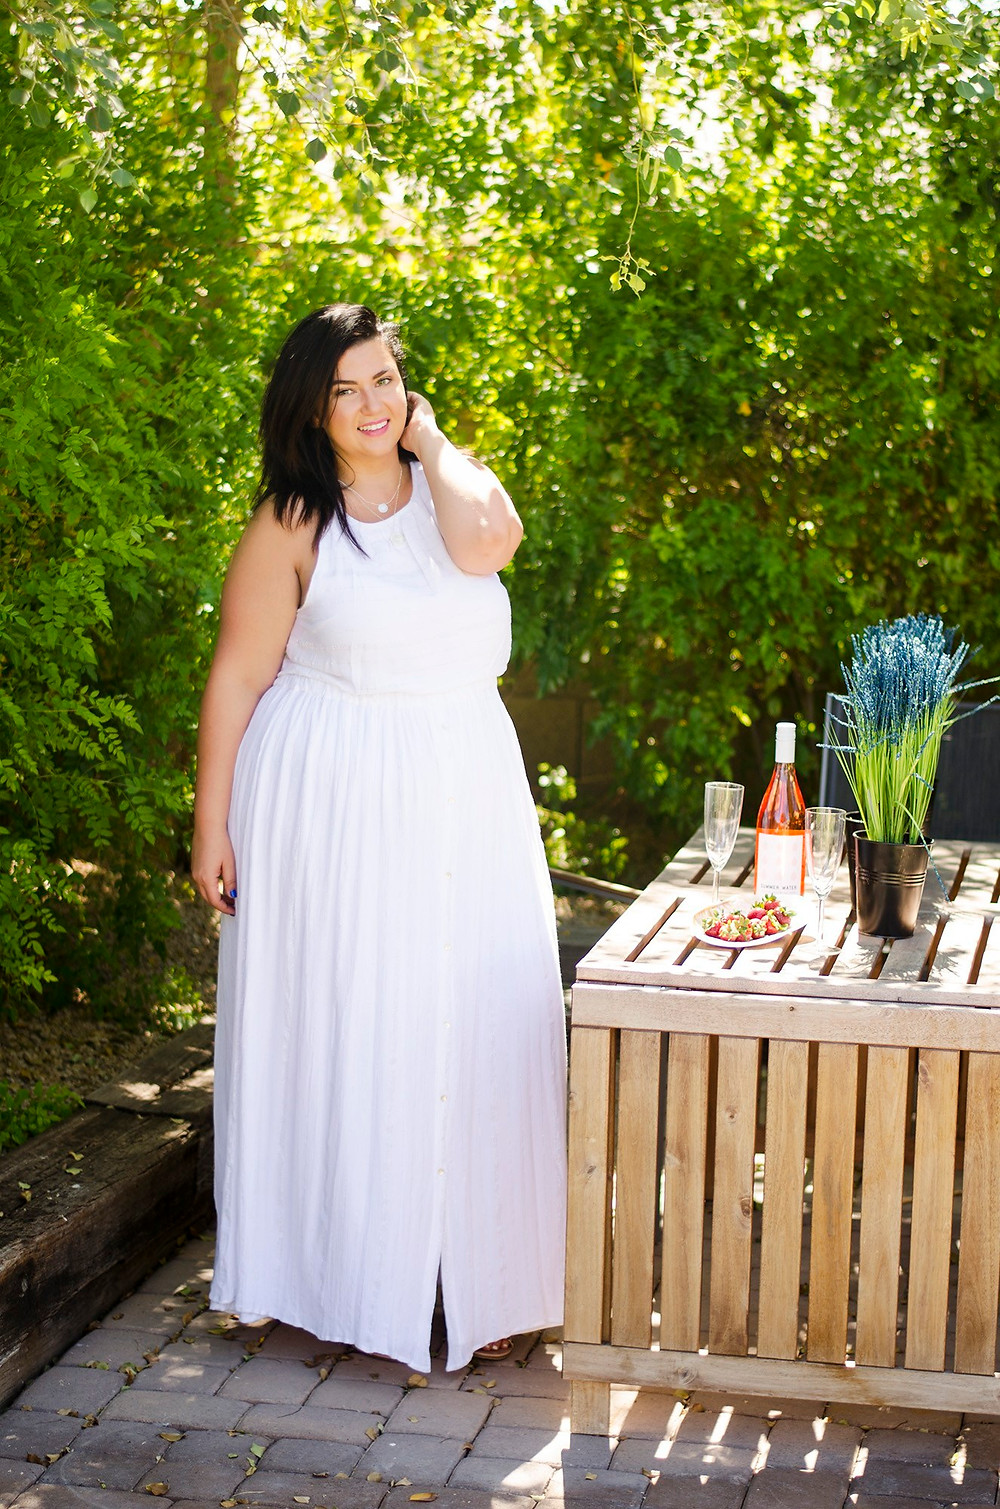 dress-plus size white dress home cocktail hour date night at home kohls plus size